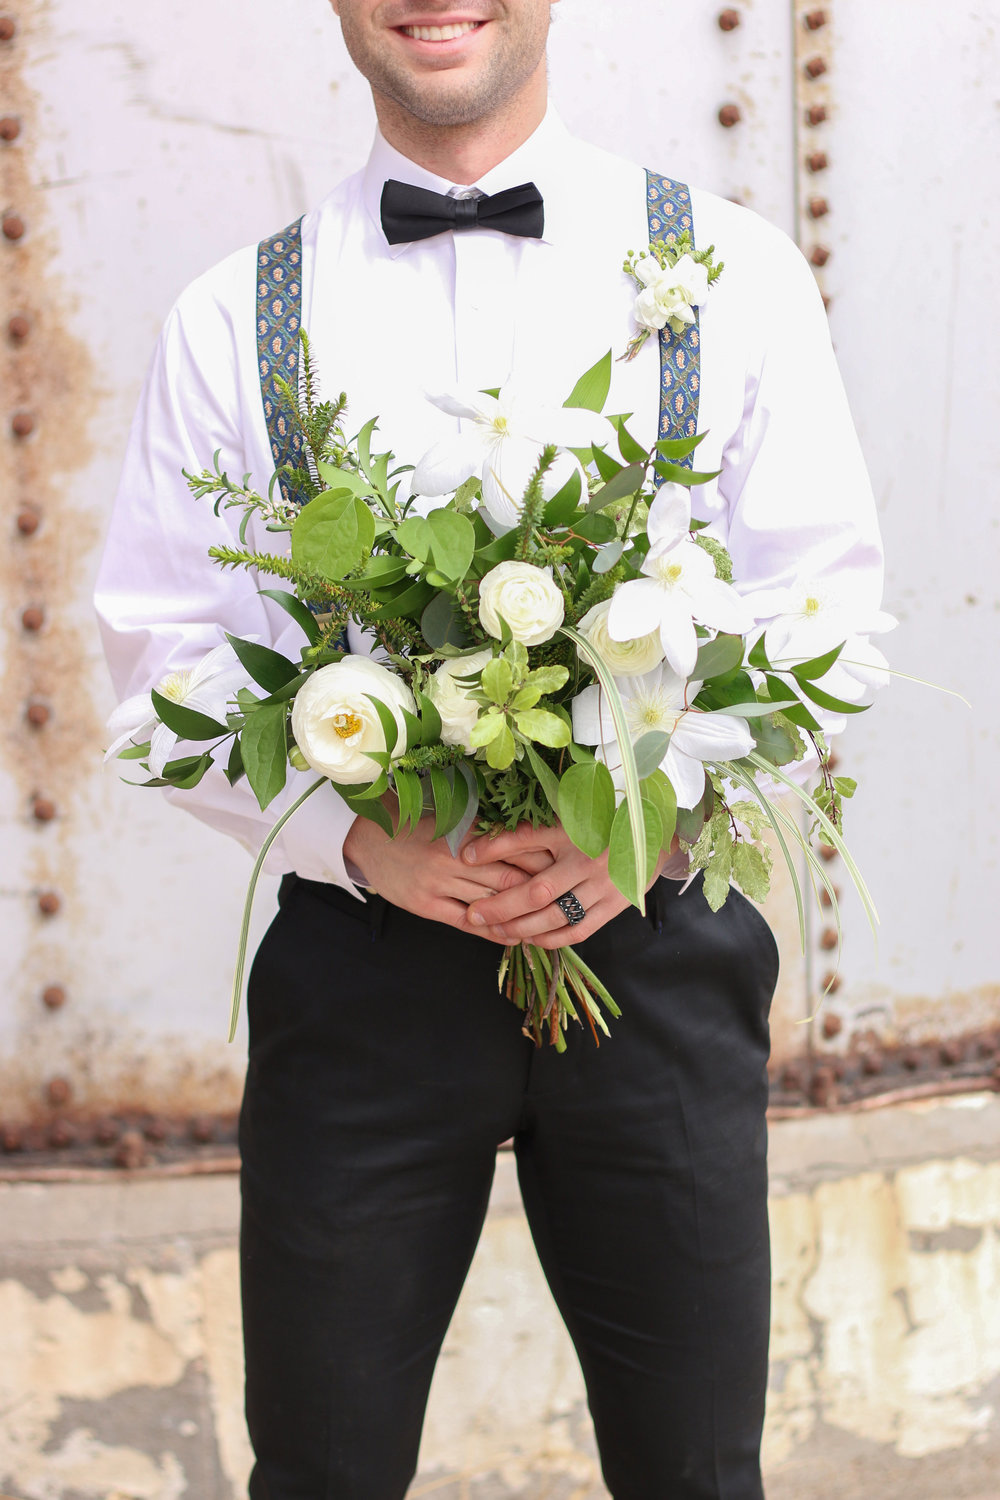 Flowers by Lace and Lilies, green foliage and white flower bouquet and boutonniere, suspenders and bow tie